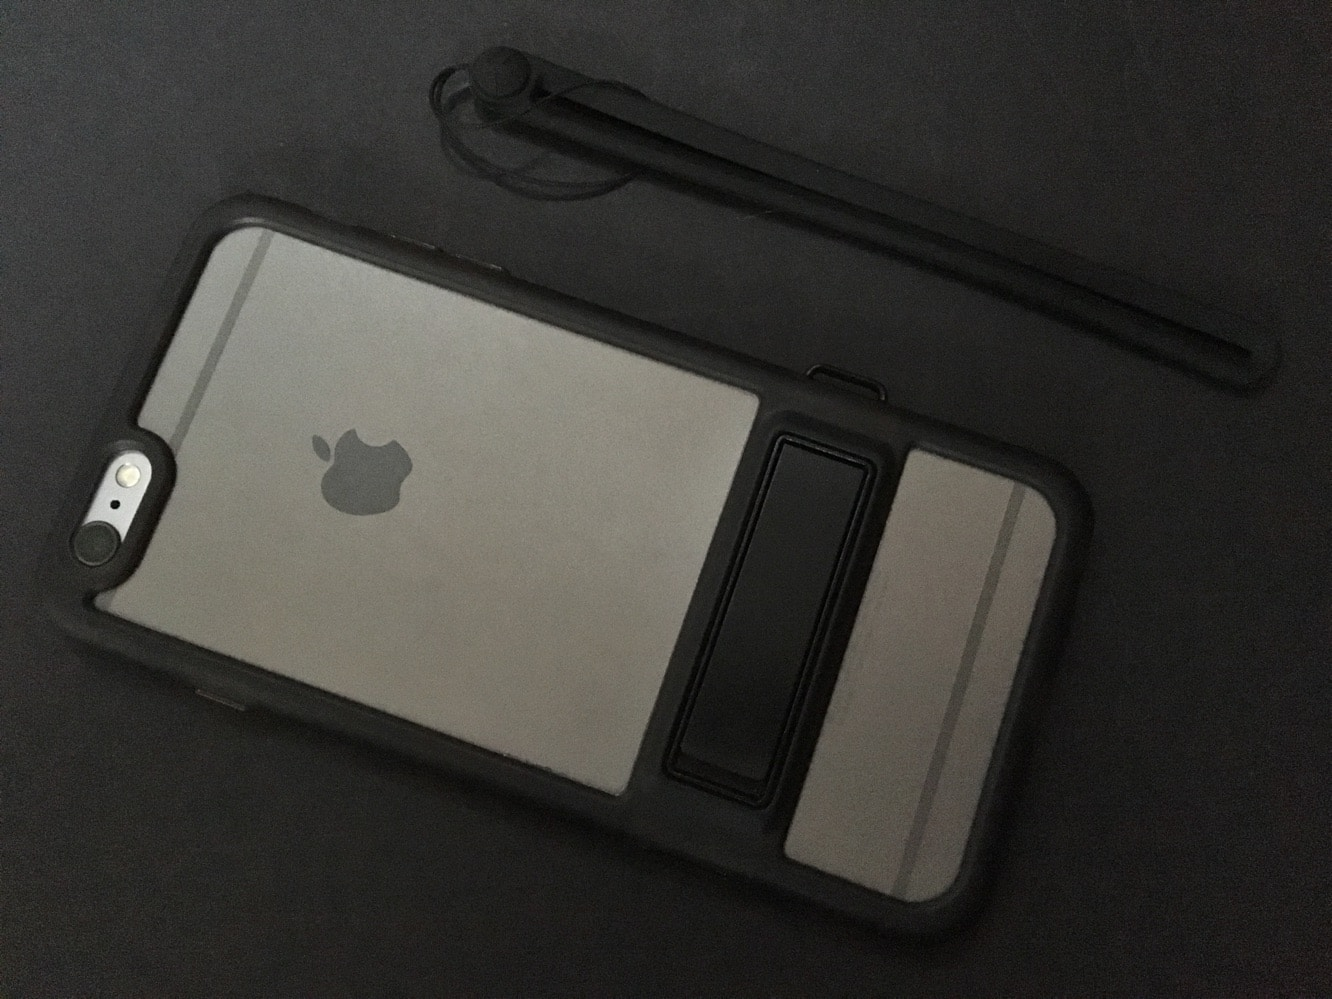 Review: SwitchEasy Aero, N+, Nude, Play for iPhone 6s/iPhone 6s Plus